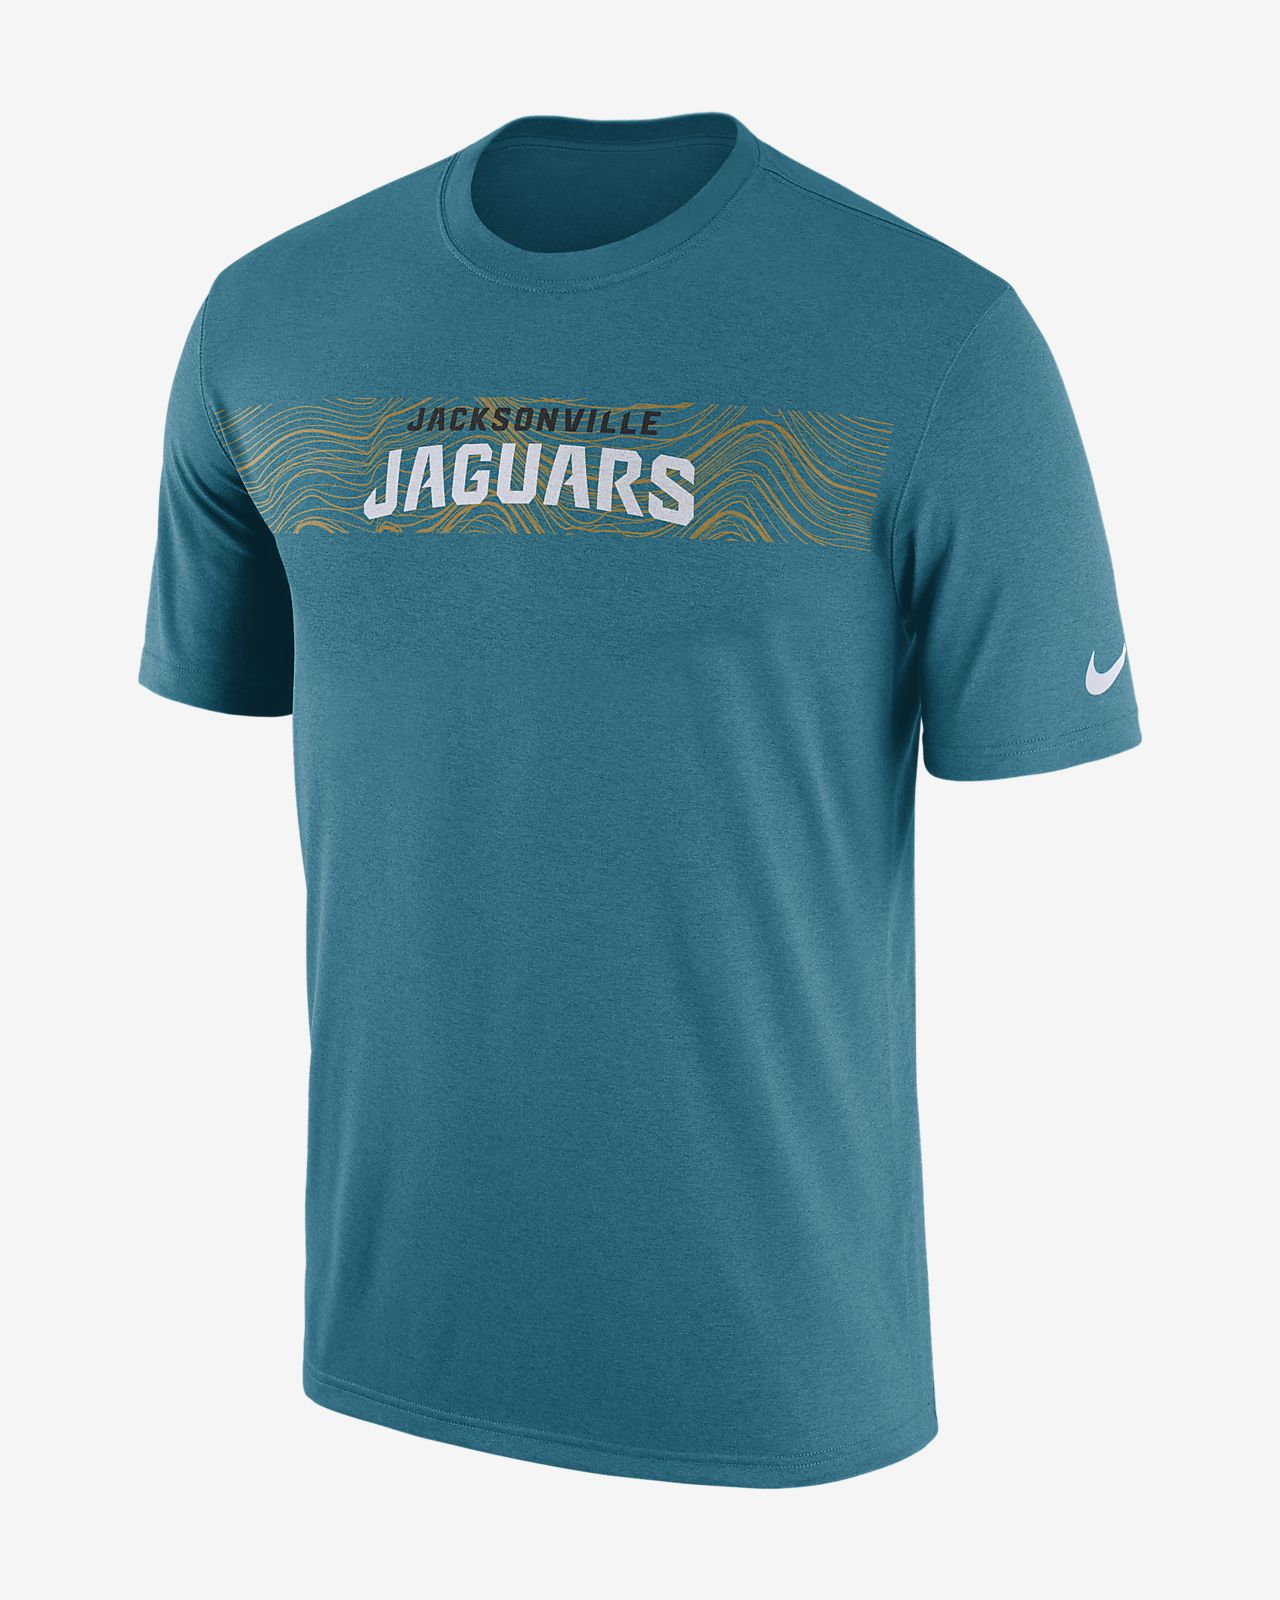 Nike Dri-FIT Legend Seismic (NFL Jaguars) Men's T-Shirt